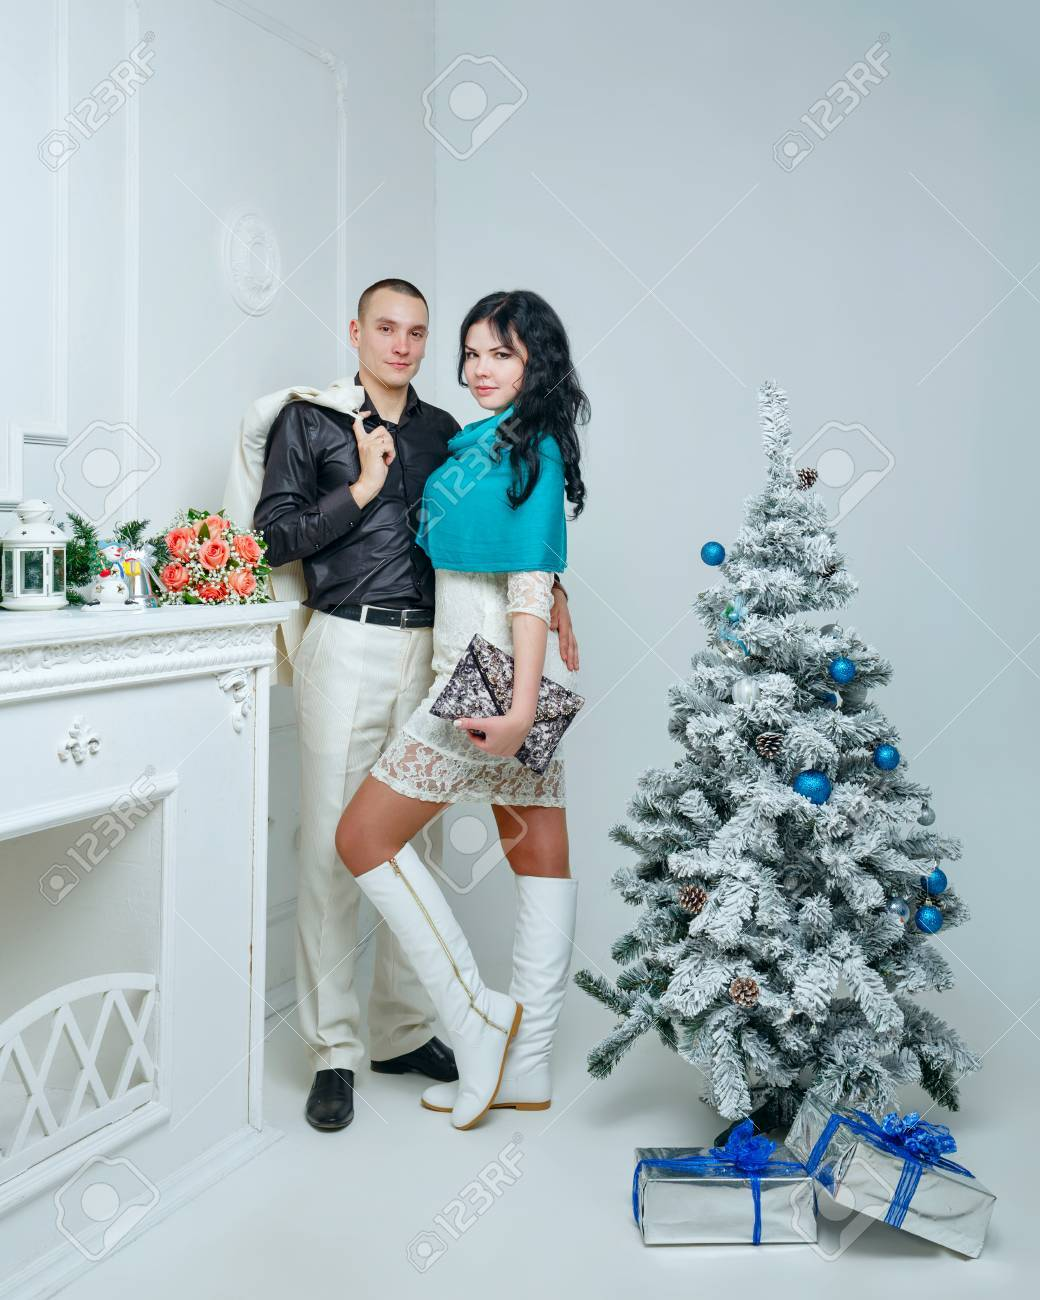 Christmas Gifts For Married Couples Young Part - 20: Stock Photo - Young Loving Married Couple Near Christmas Tree With Gifts